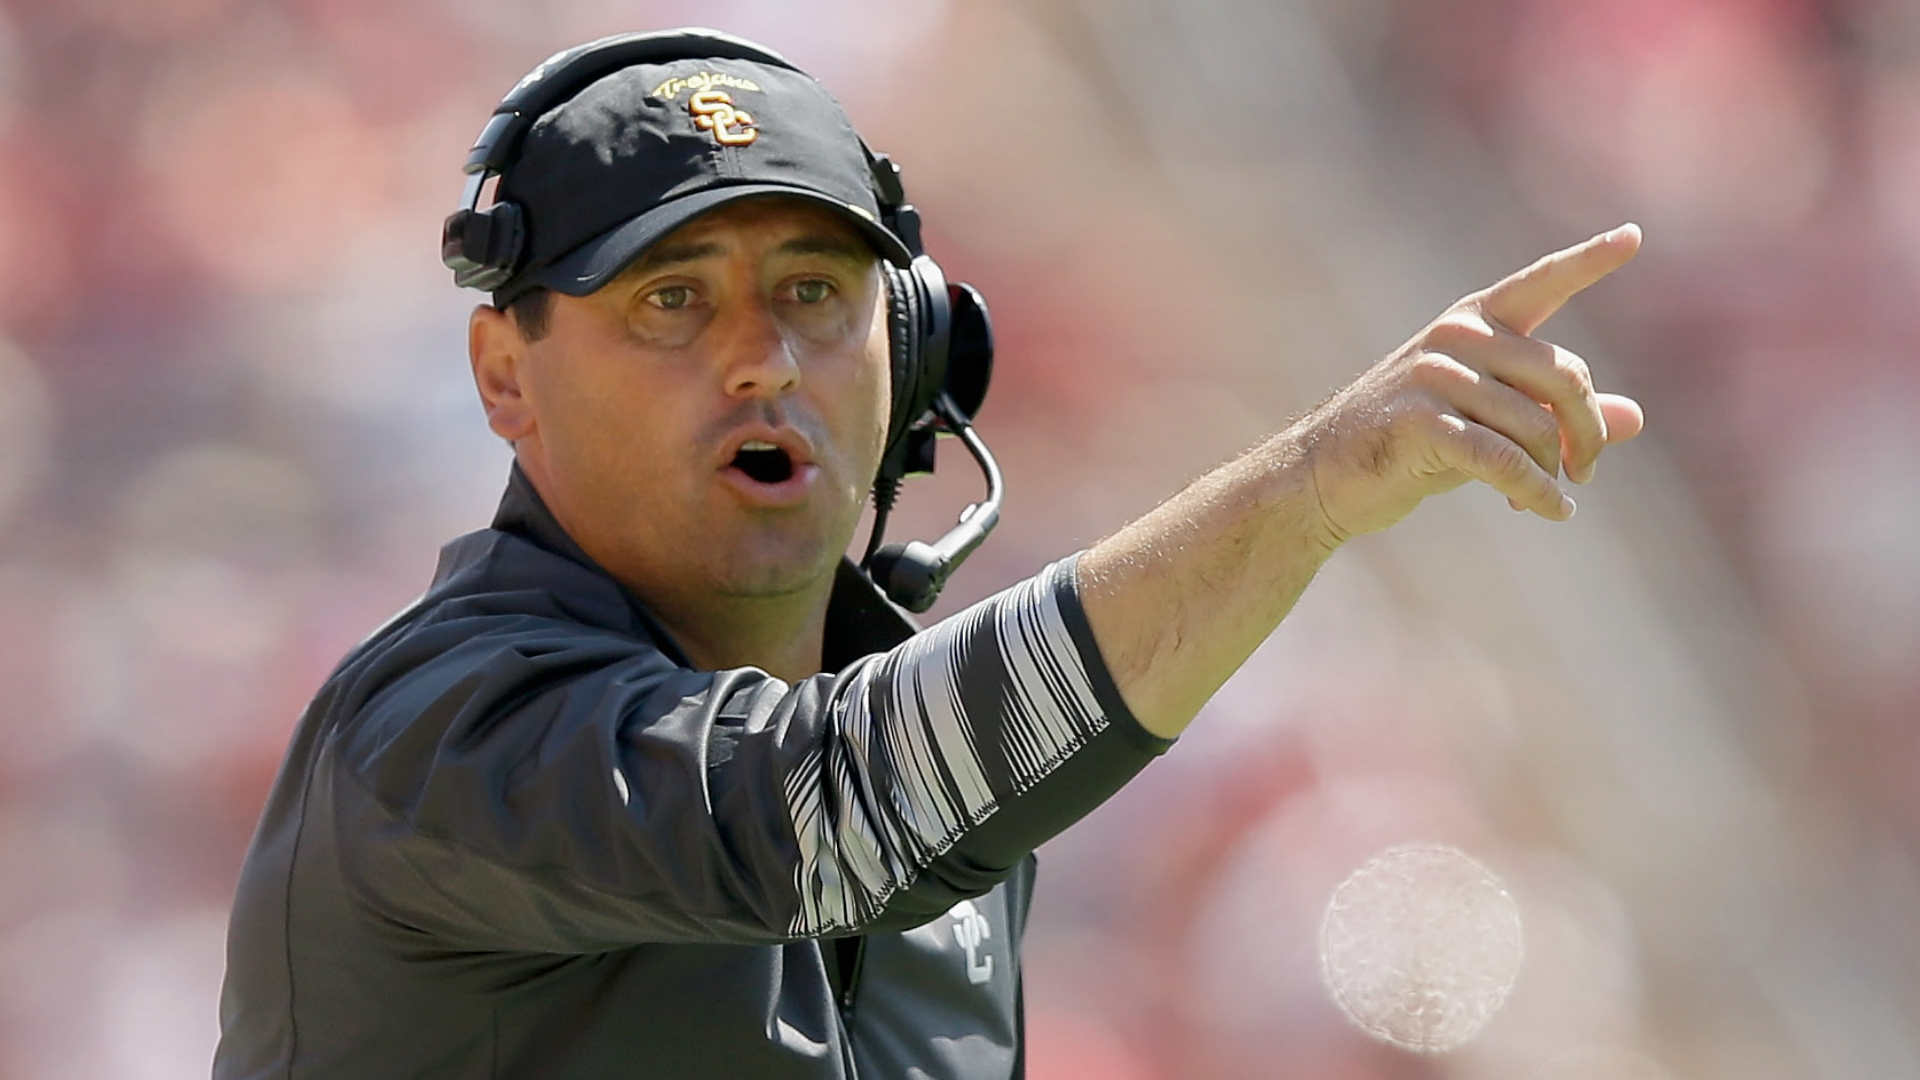 Sarkisian-Steve-08242015-US-News-Getty-FTR